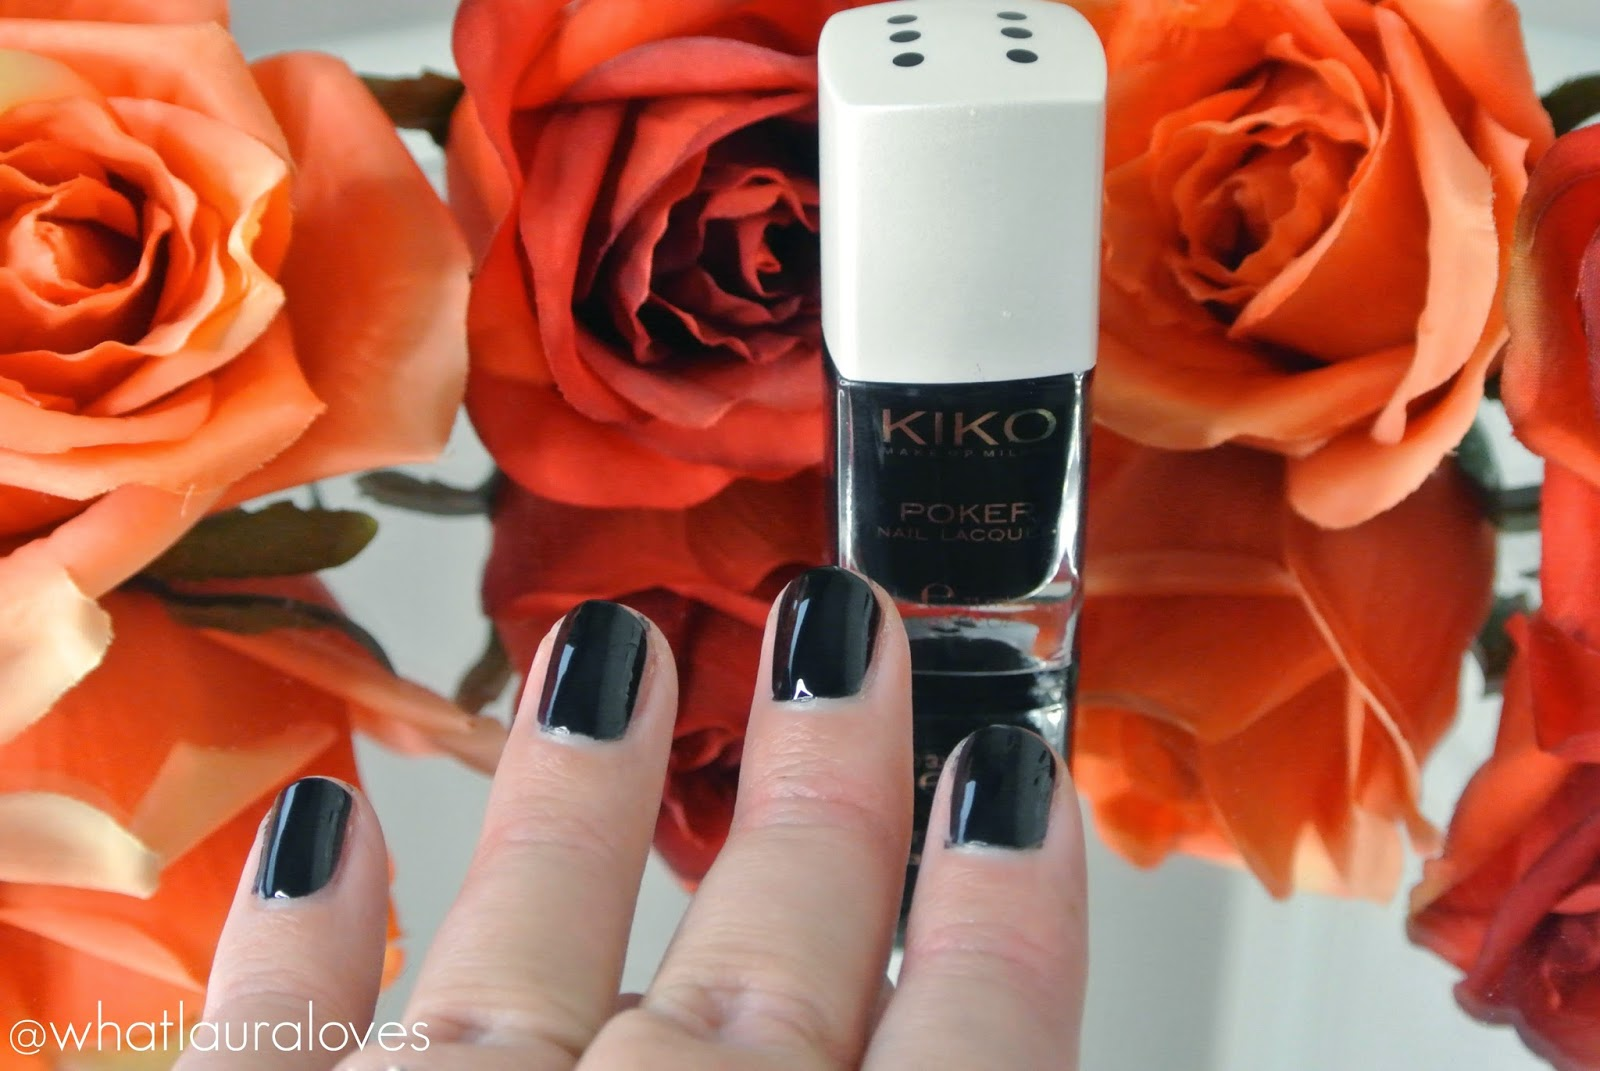 Kiko Poker Nail Lacquer in 6 Slick Bluenoir Swatch